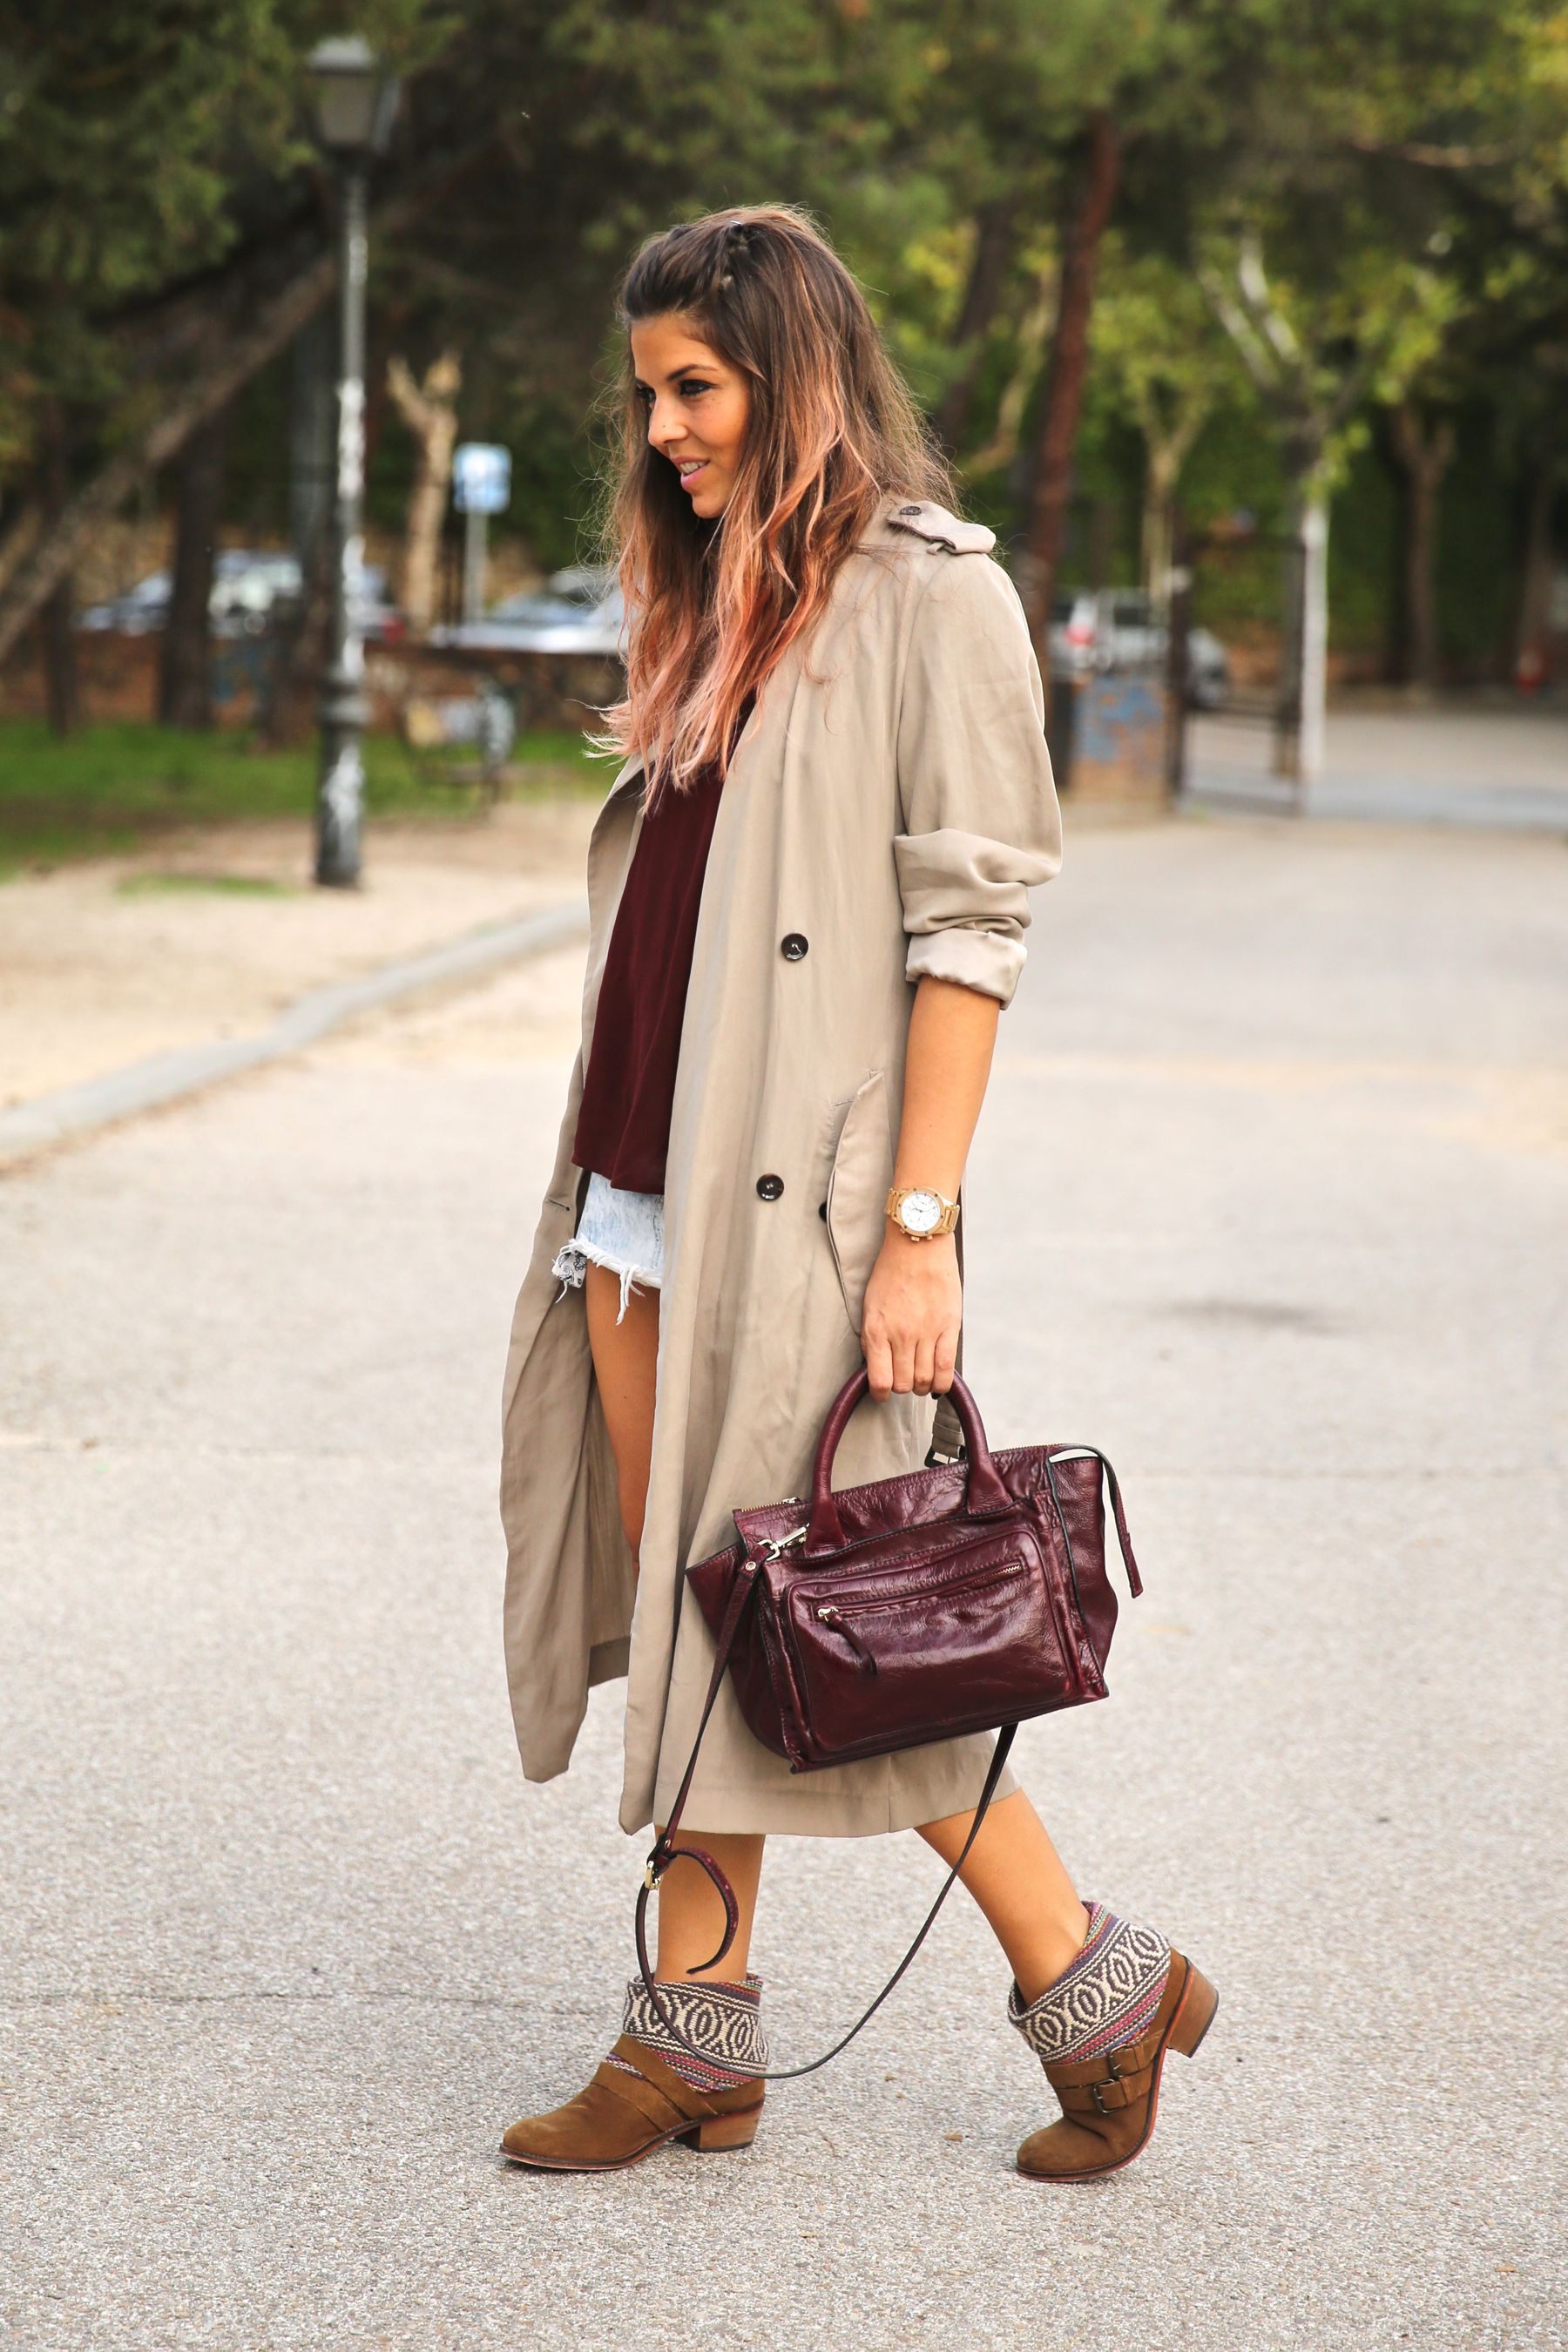 trendy_taste-look-outfit-street_style-ootd-blog-blogger-fashion_spain-moda_españa-boho-hippie-gabardina-botines_camperos-booties-gabardina-raincoat-burgundy_bag-zara-12